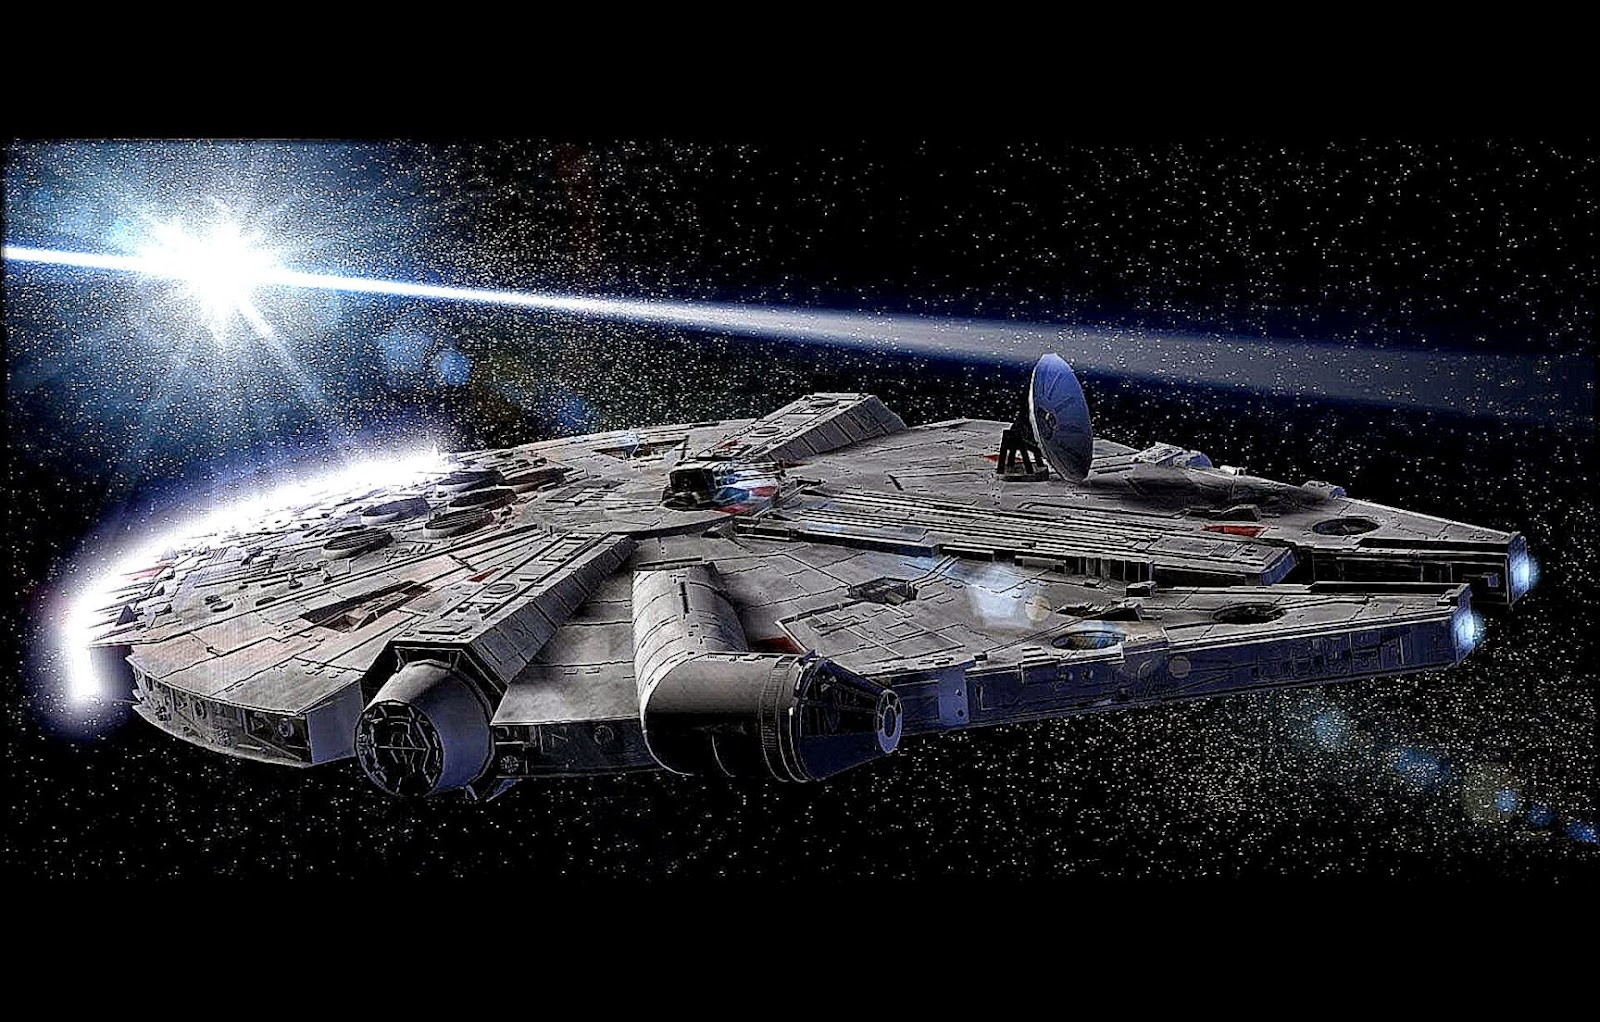 Millenium Falcon Wallpapers   Full HD wallpaper search